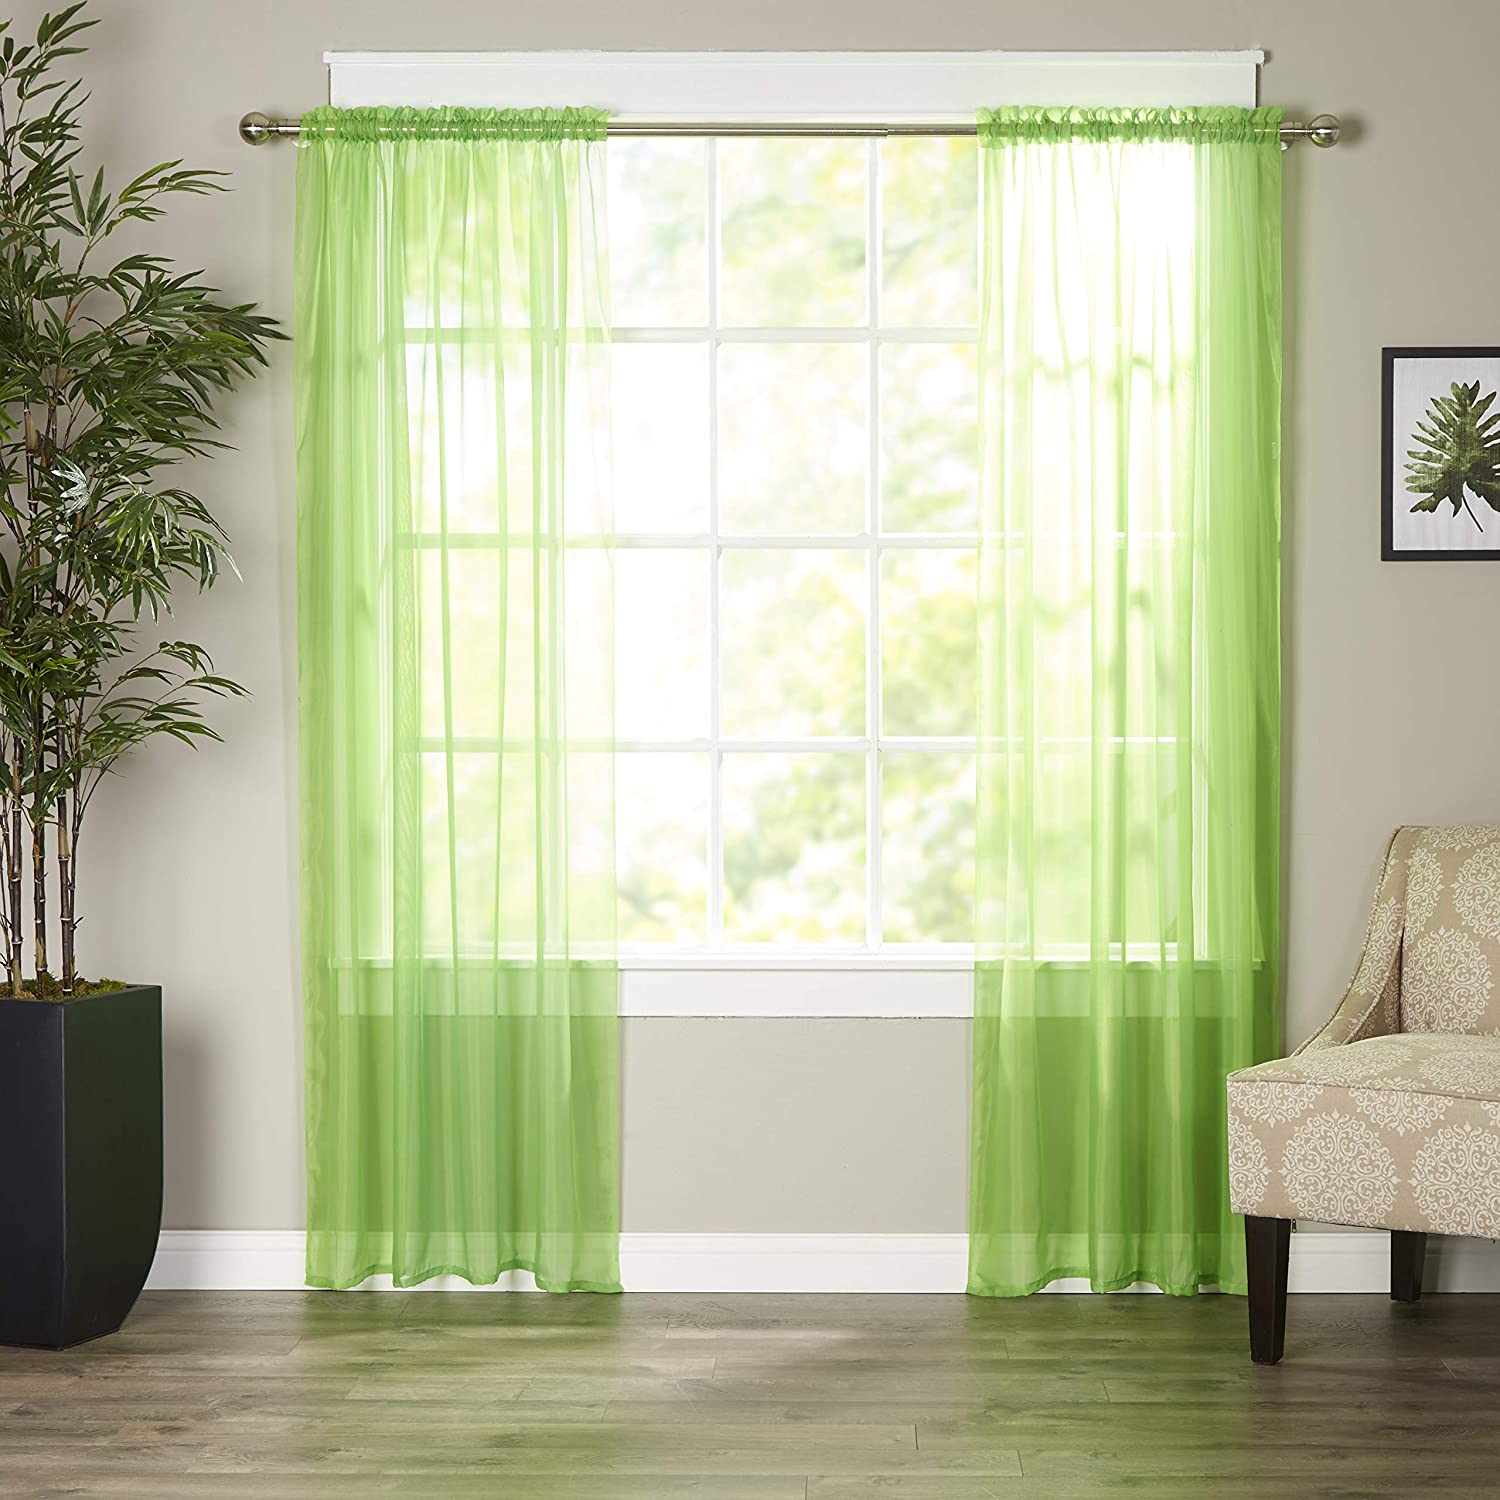 Elegant Comfort Luxury Sheer Curtains, Window Treatment Curtain Panels with Rod Pocket for Kitchen, Bedroom and Living Room (40 x 84-inches Long, Set of 2), Lime